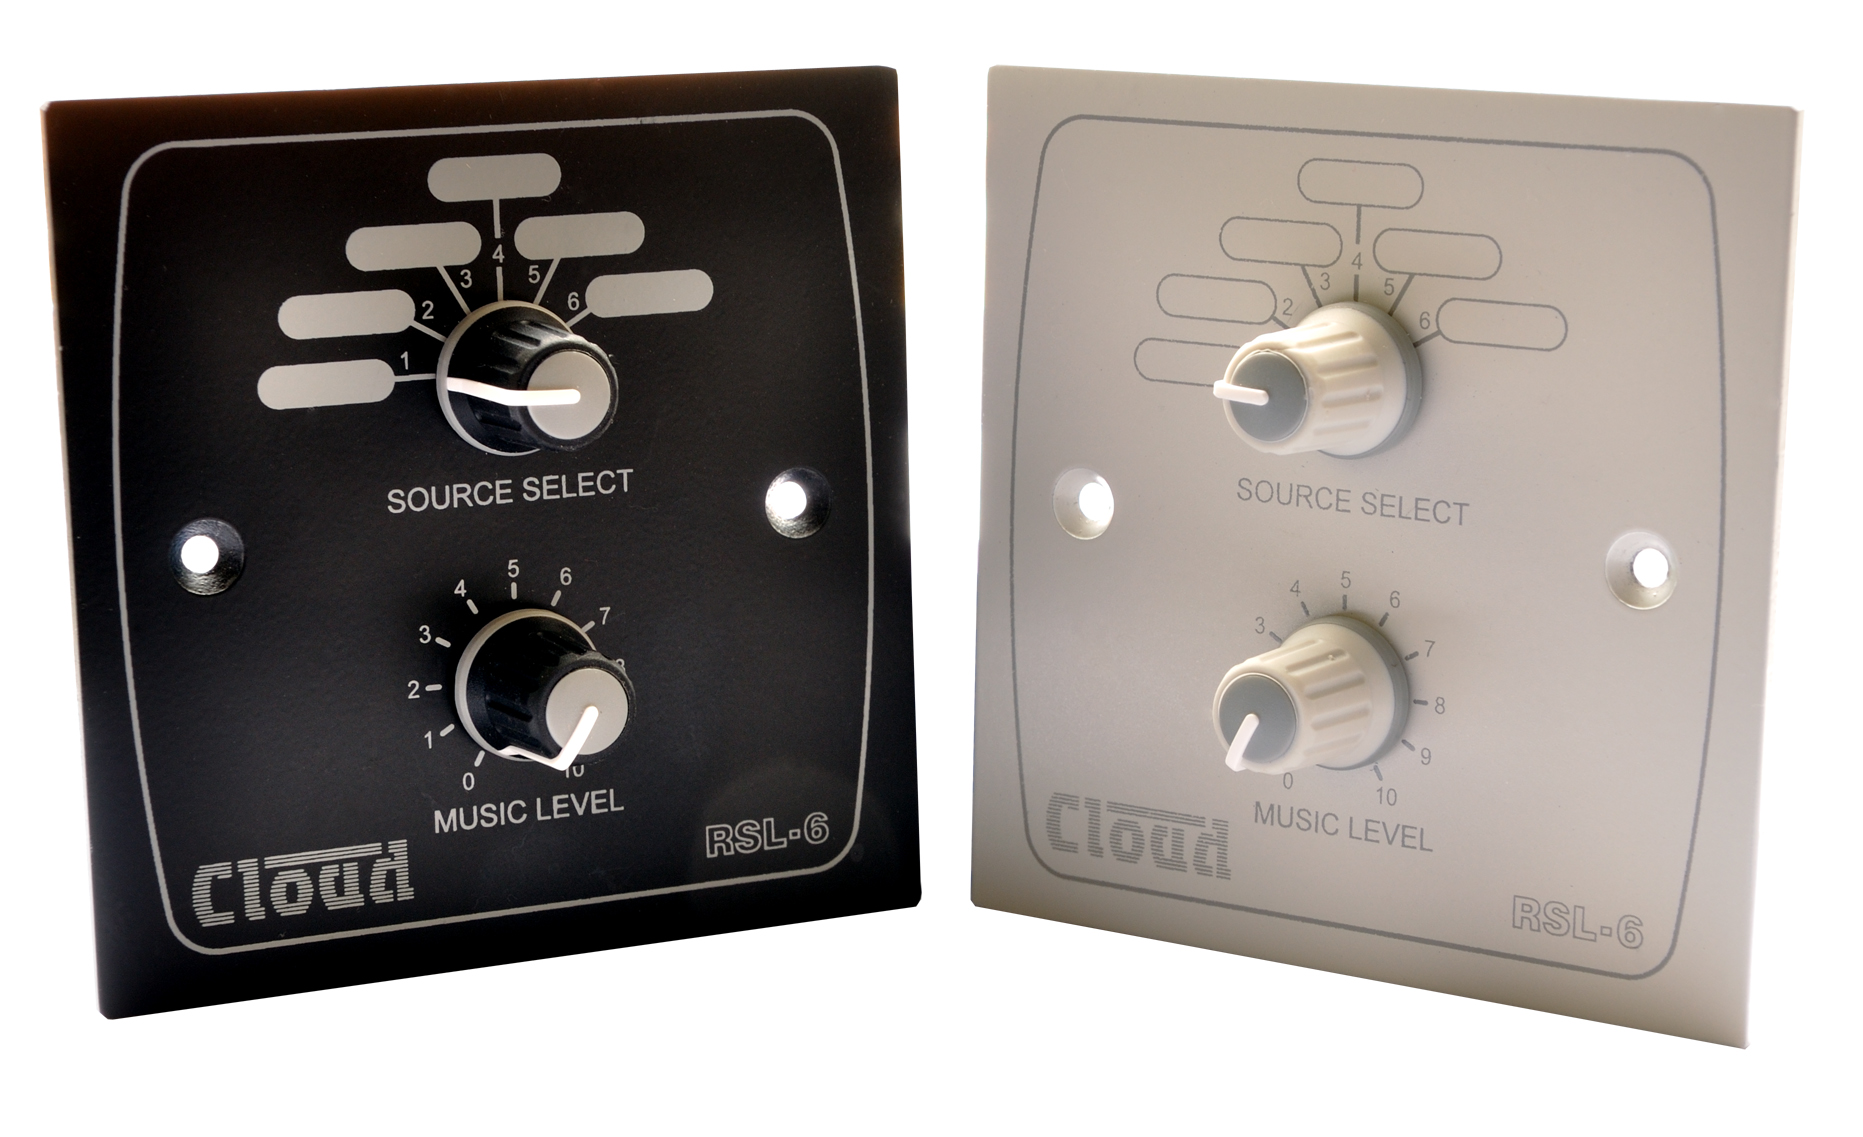 Cloud RSL-6 - Available in Black or White Finish from October 2012